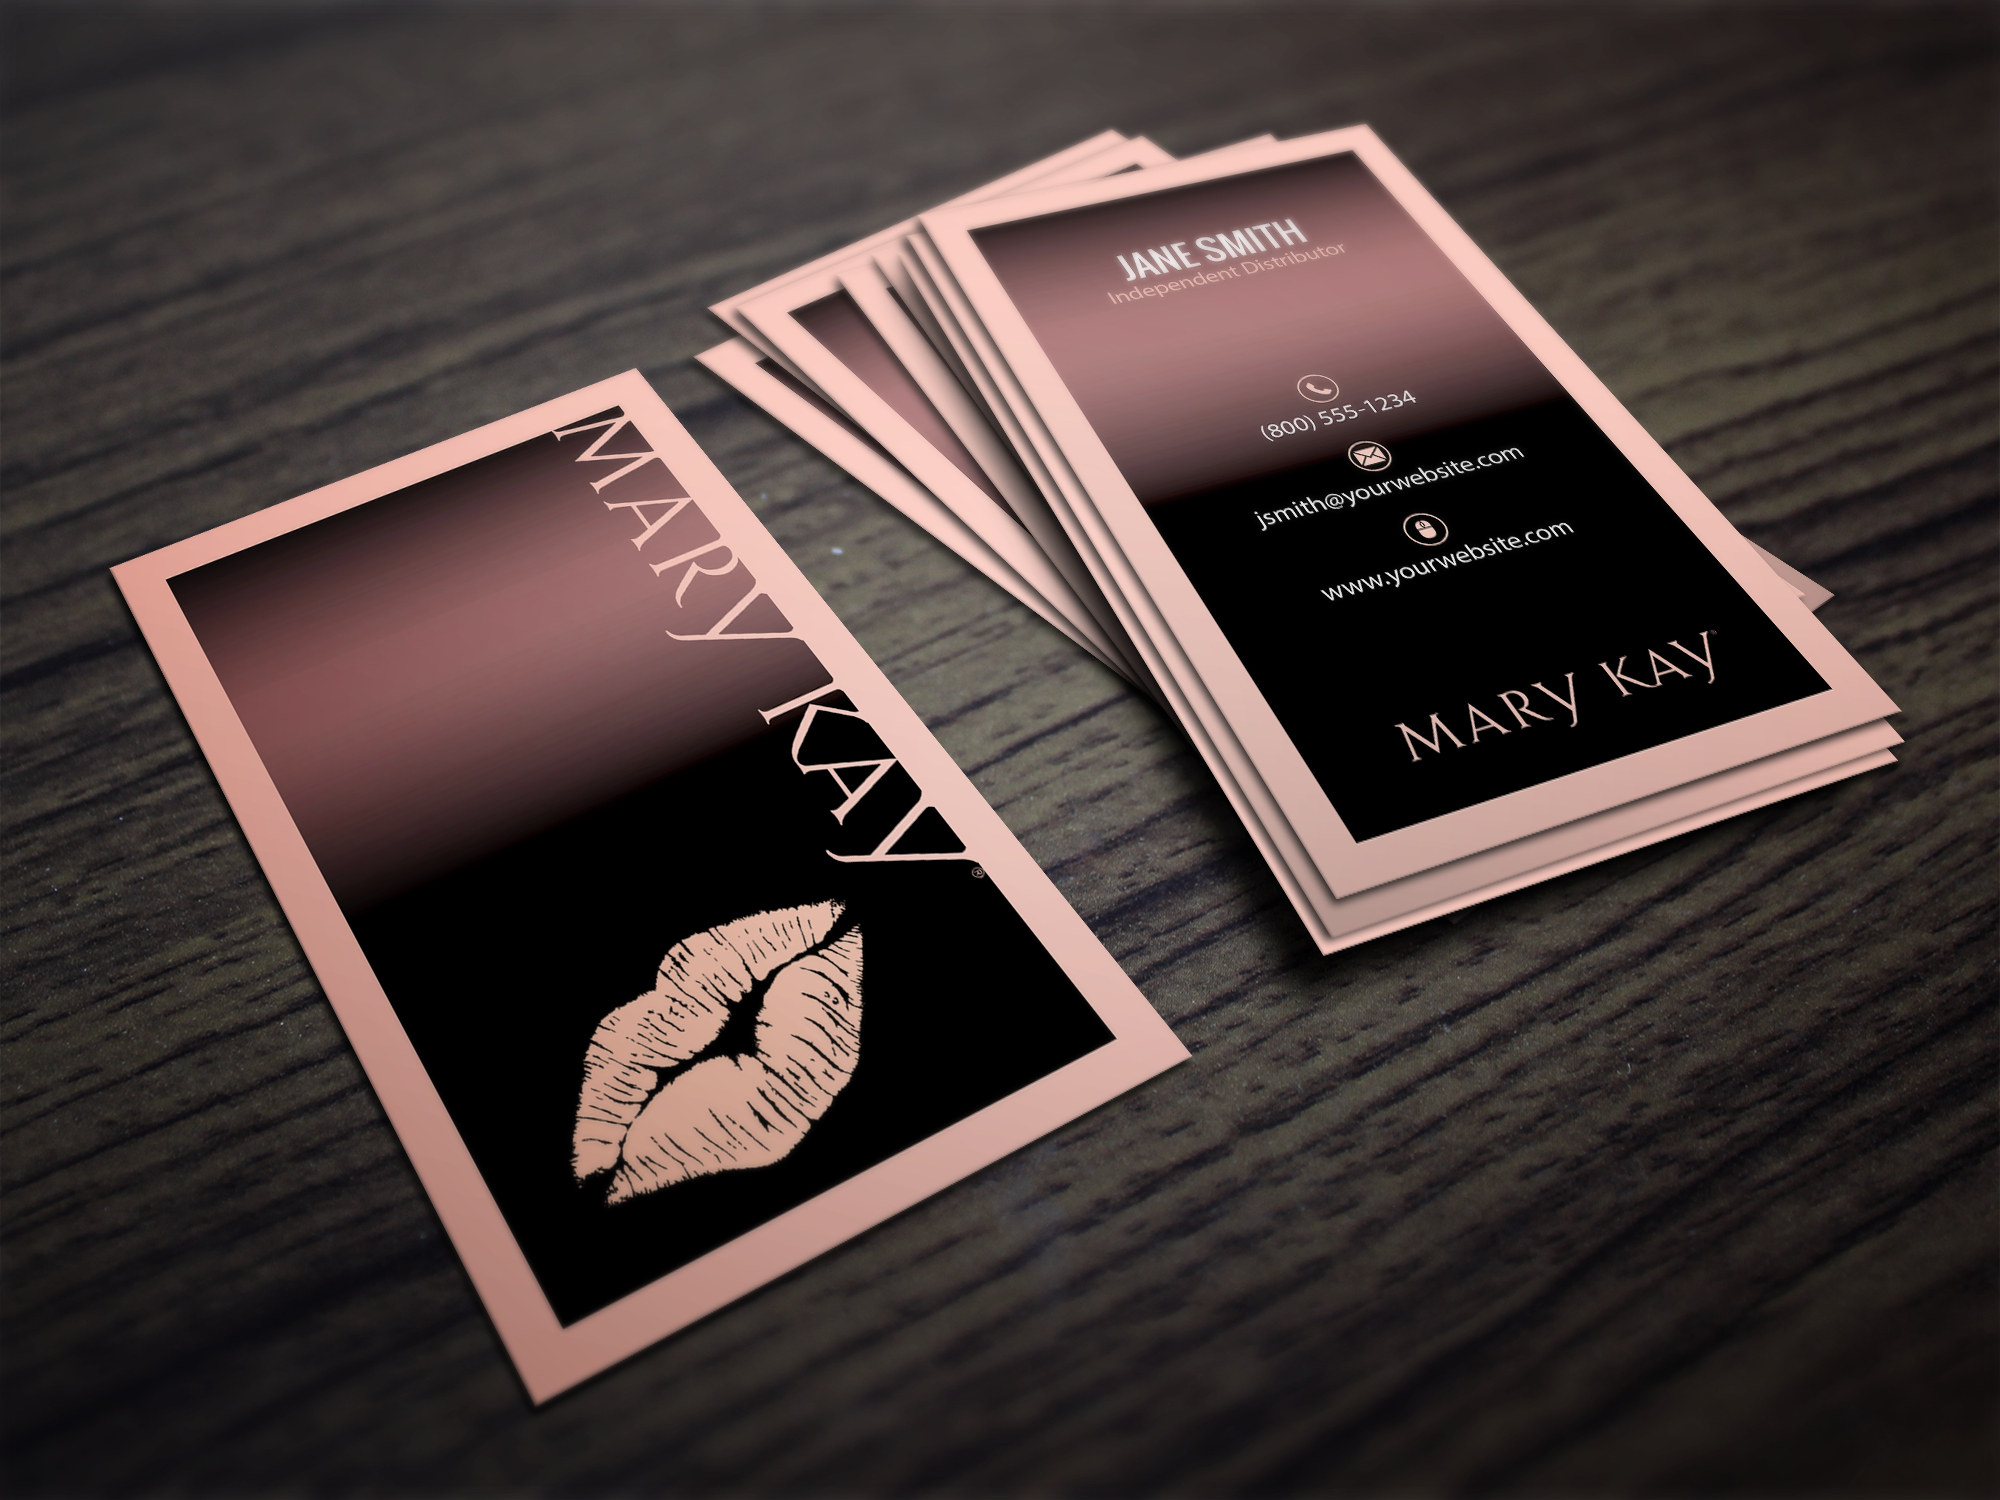 Mary Kay Business Cards | Mary Kay | Pinterest | Mary Kay, Mary Kay - Free Printable Mary Kay Business Cards